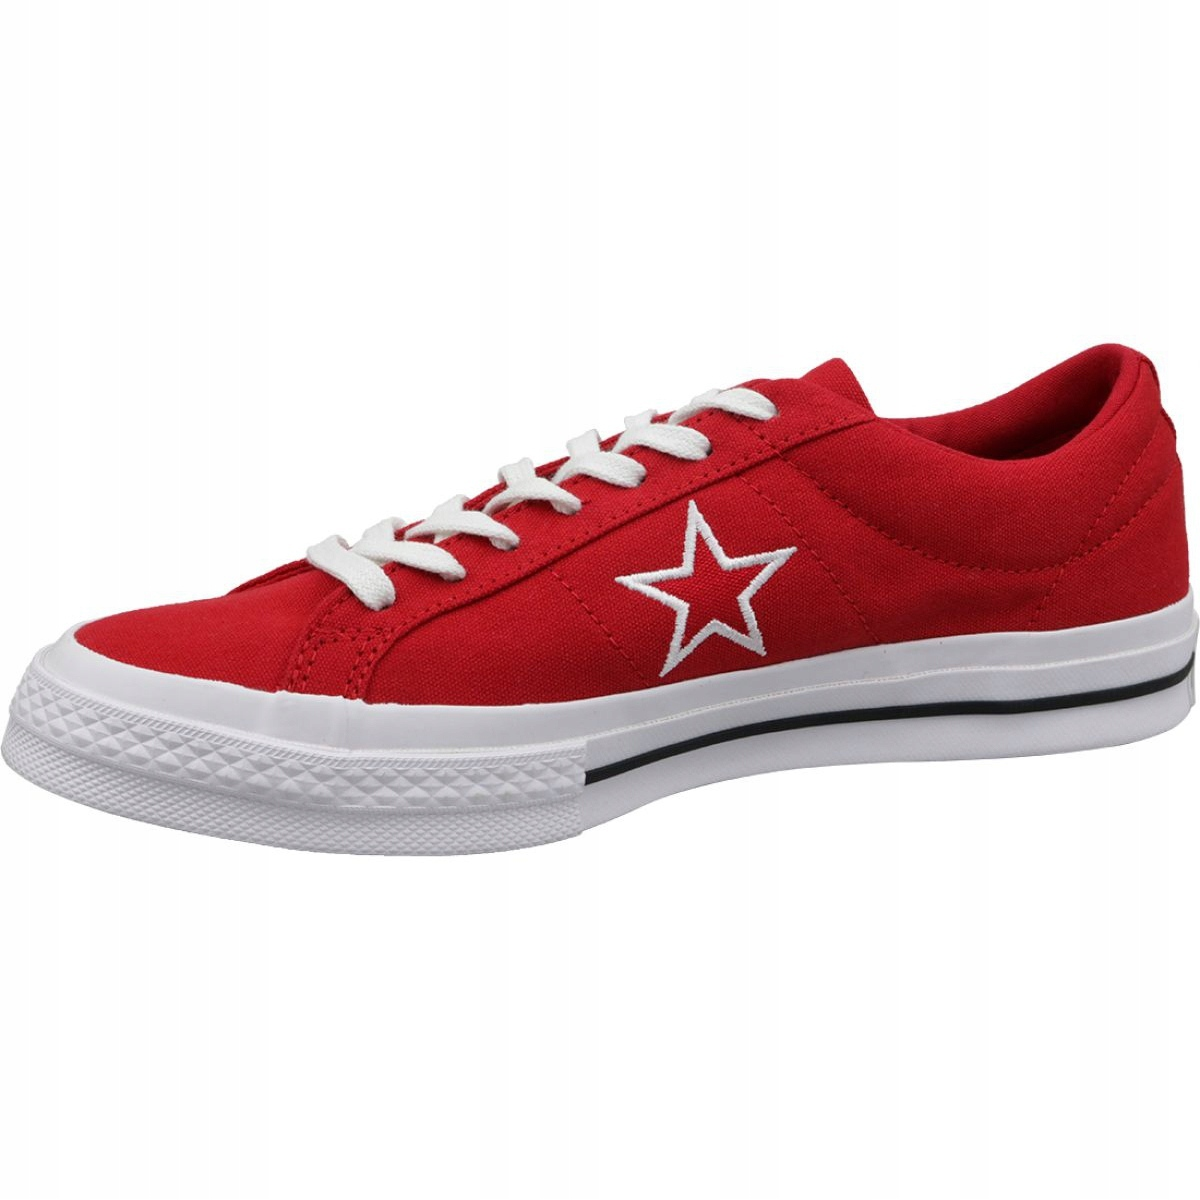 Converse One Star Ox shoes M 163378C